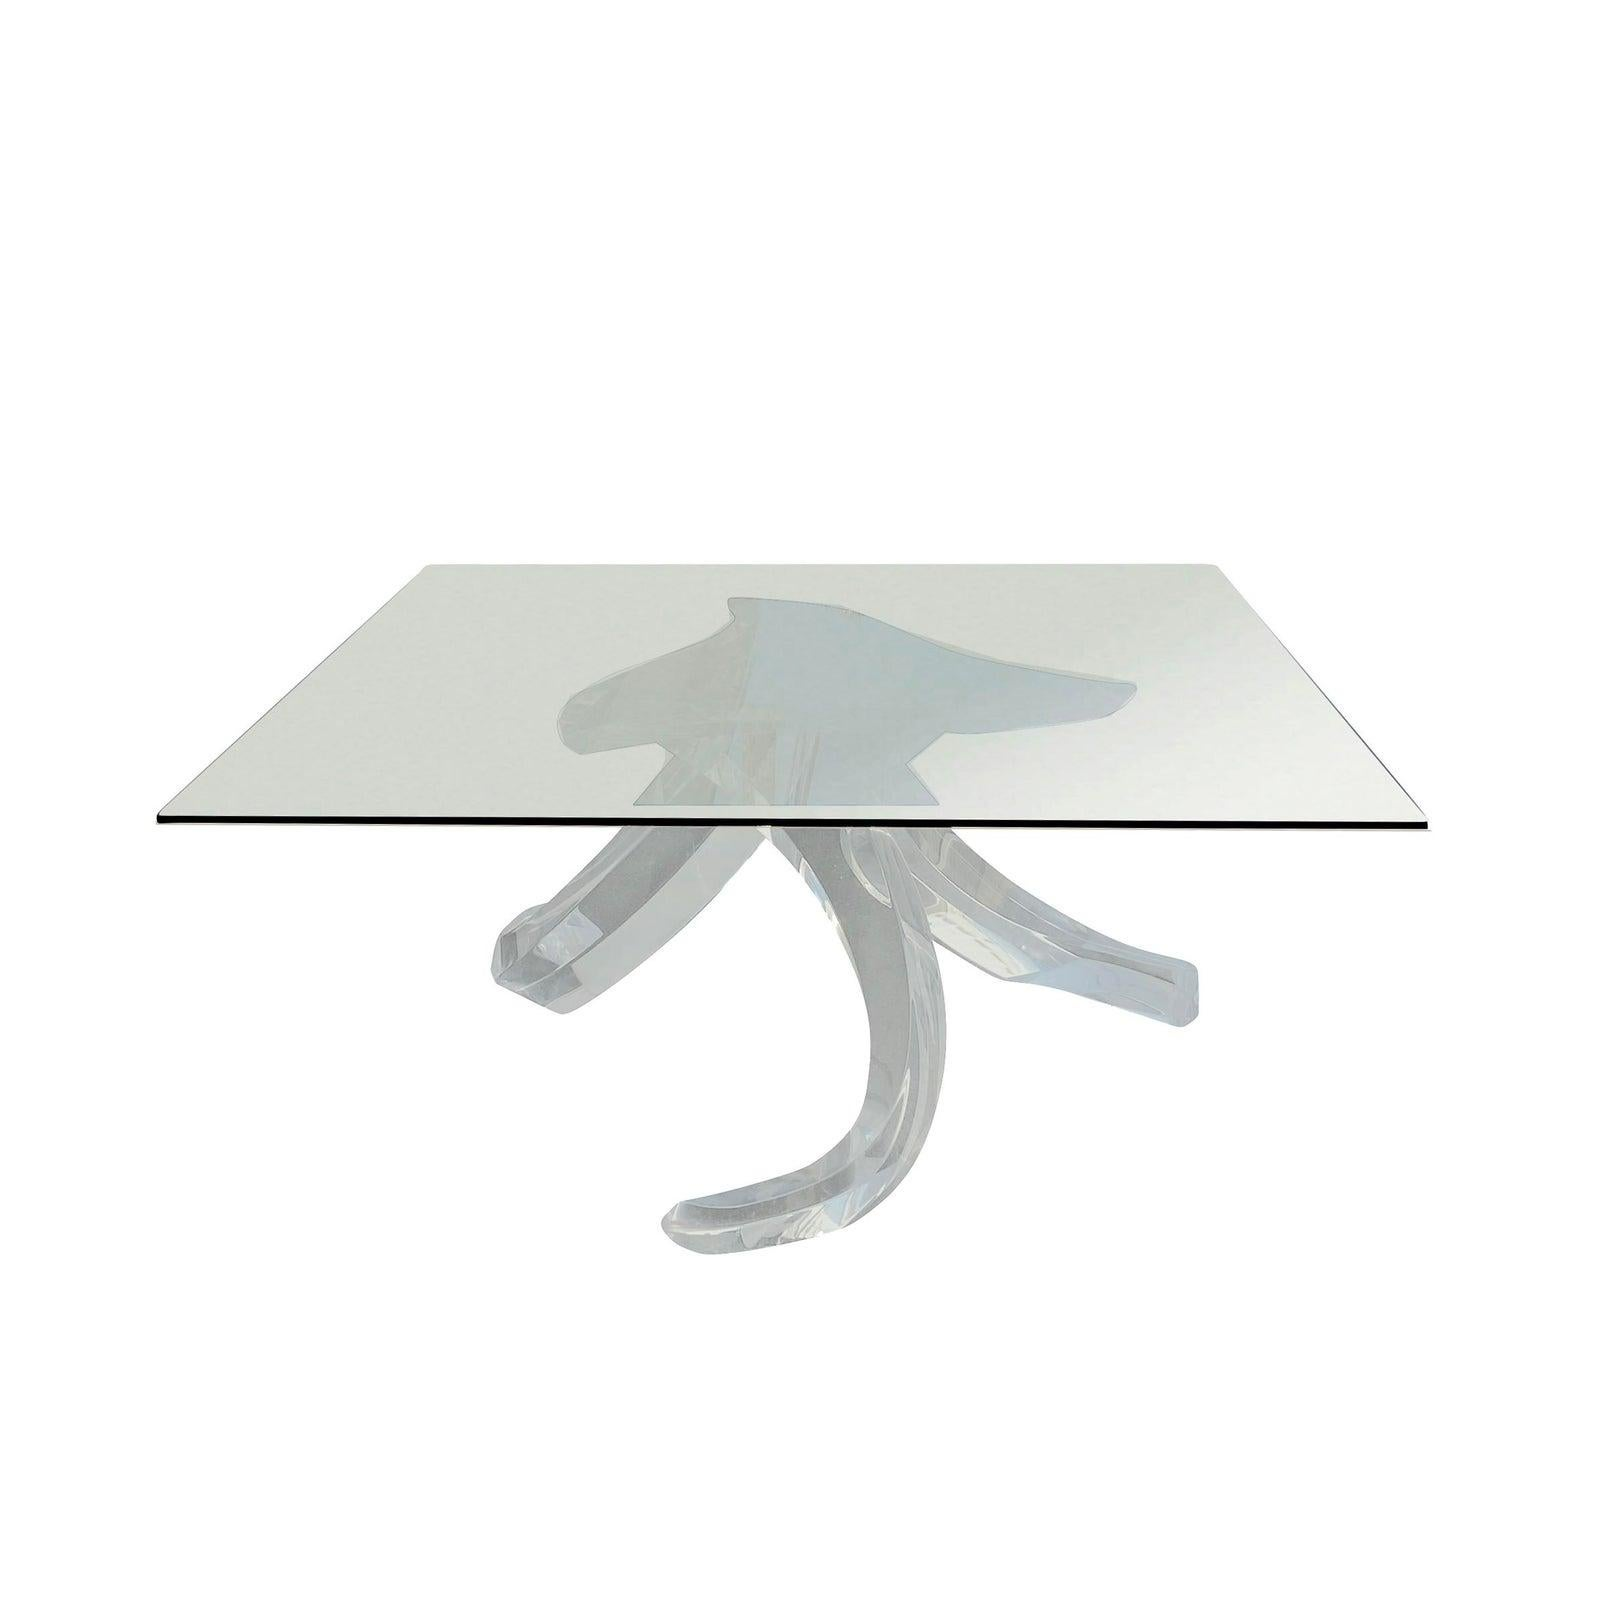 1980s Lucite and Glass Sculptural Abstract Coffee Table by Shlomi Haziza